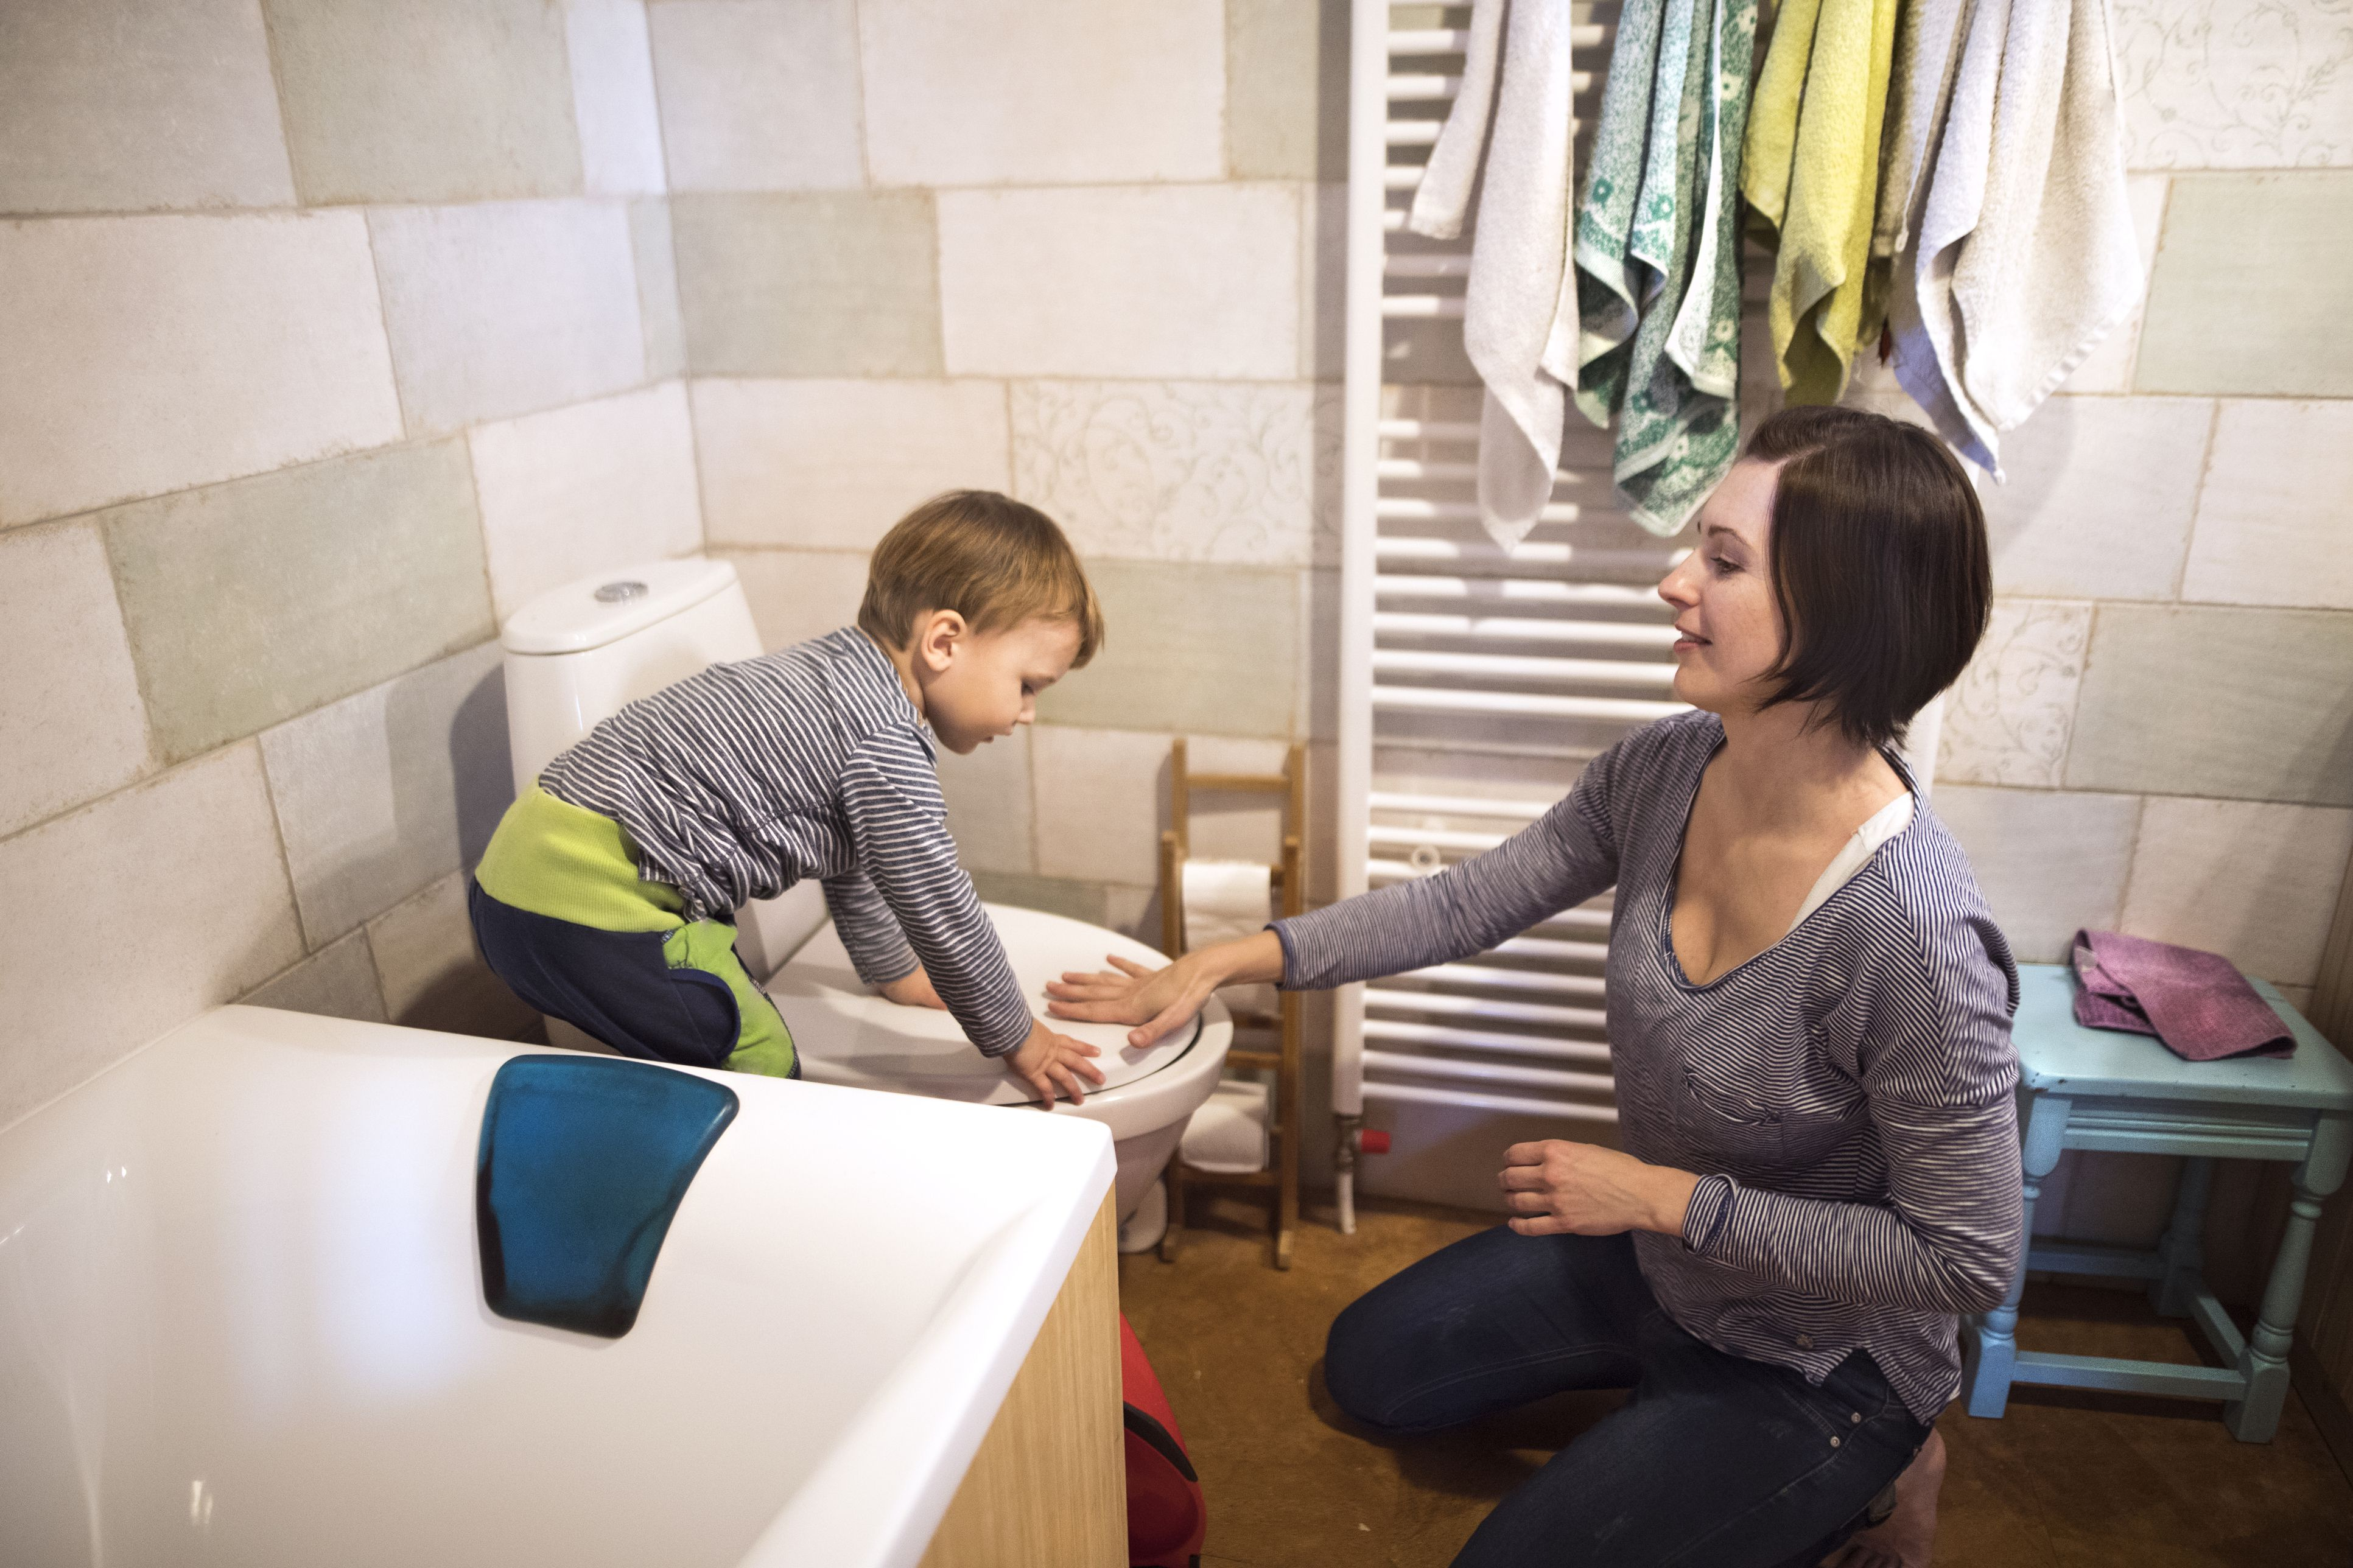 Little boy in bathroom flushing the toilet, beautiful mother helping him